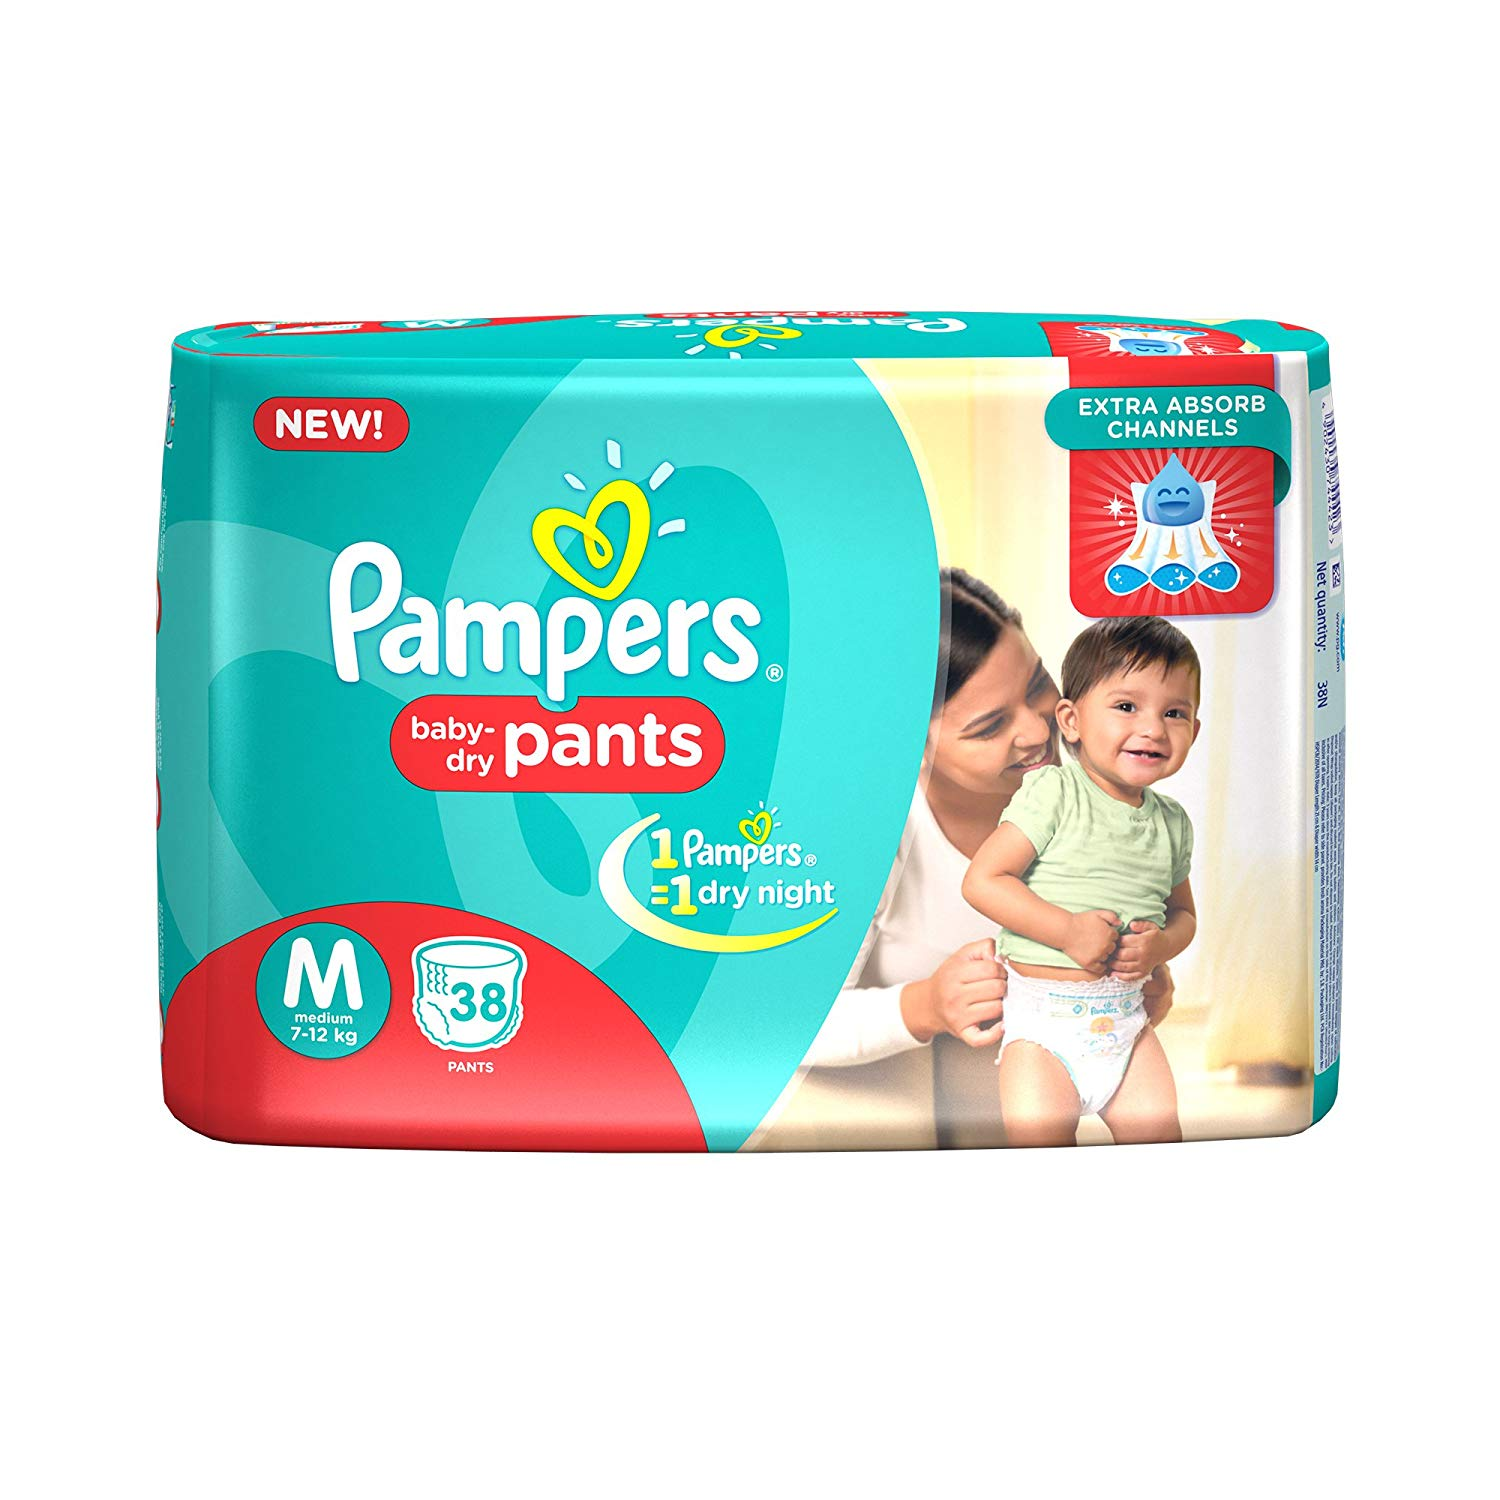 Pampers Medium Size Diapers (38 Count)